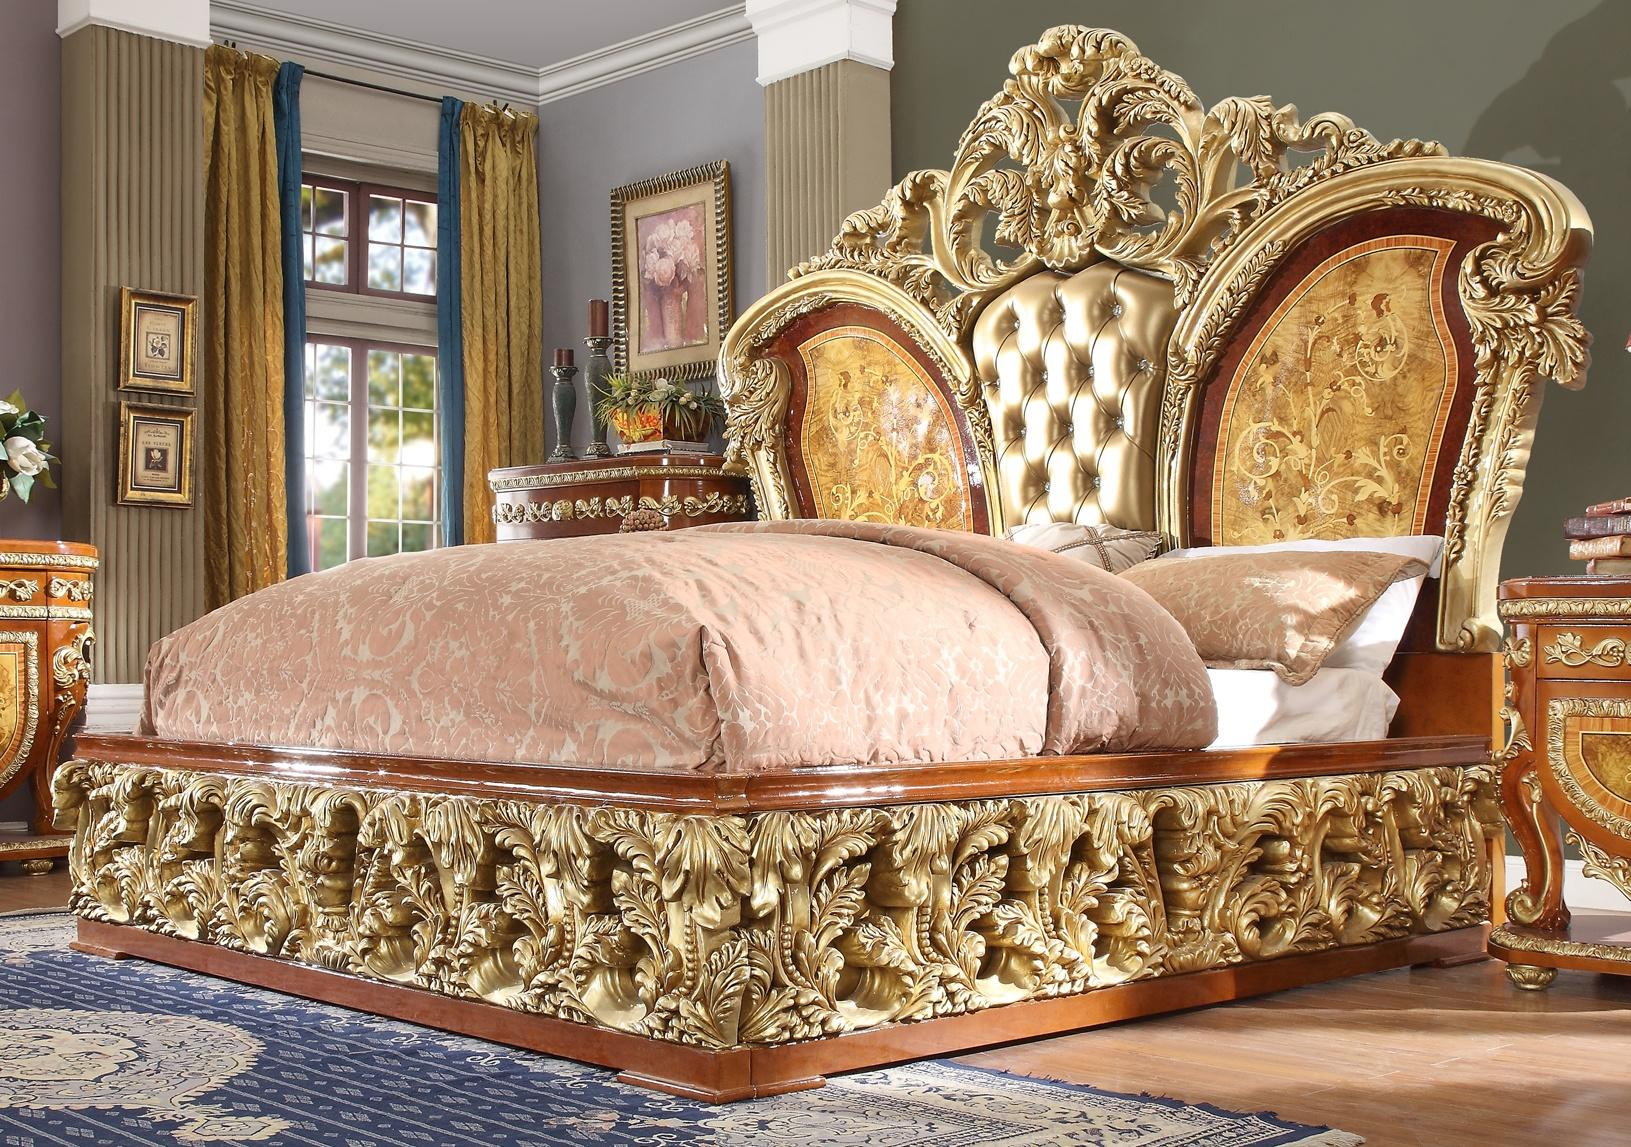 Luxury CAL King Bedroom Set 3 Psc Gold Curved Wood Homey ...